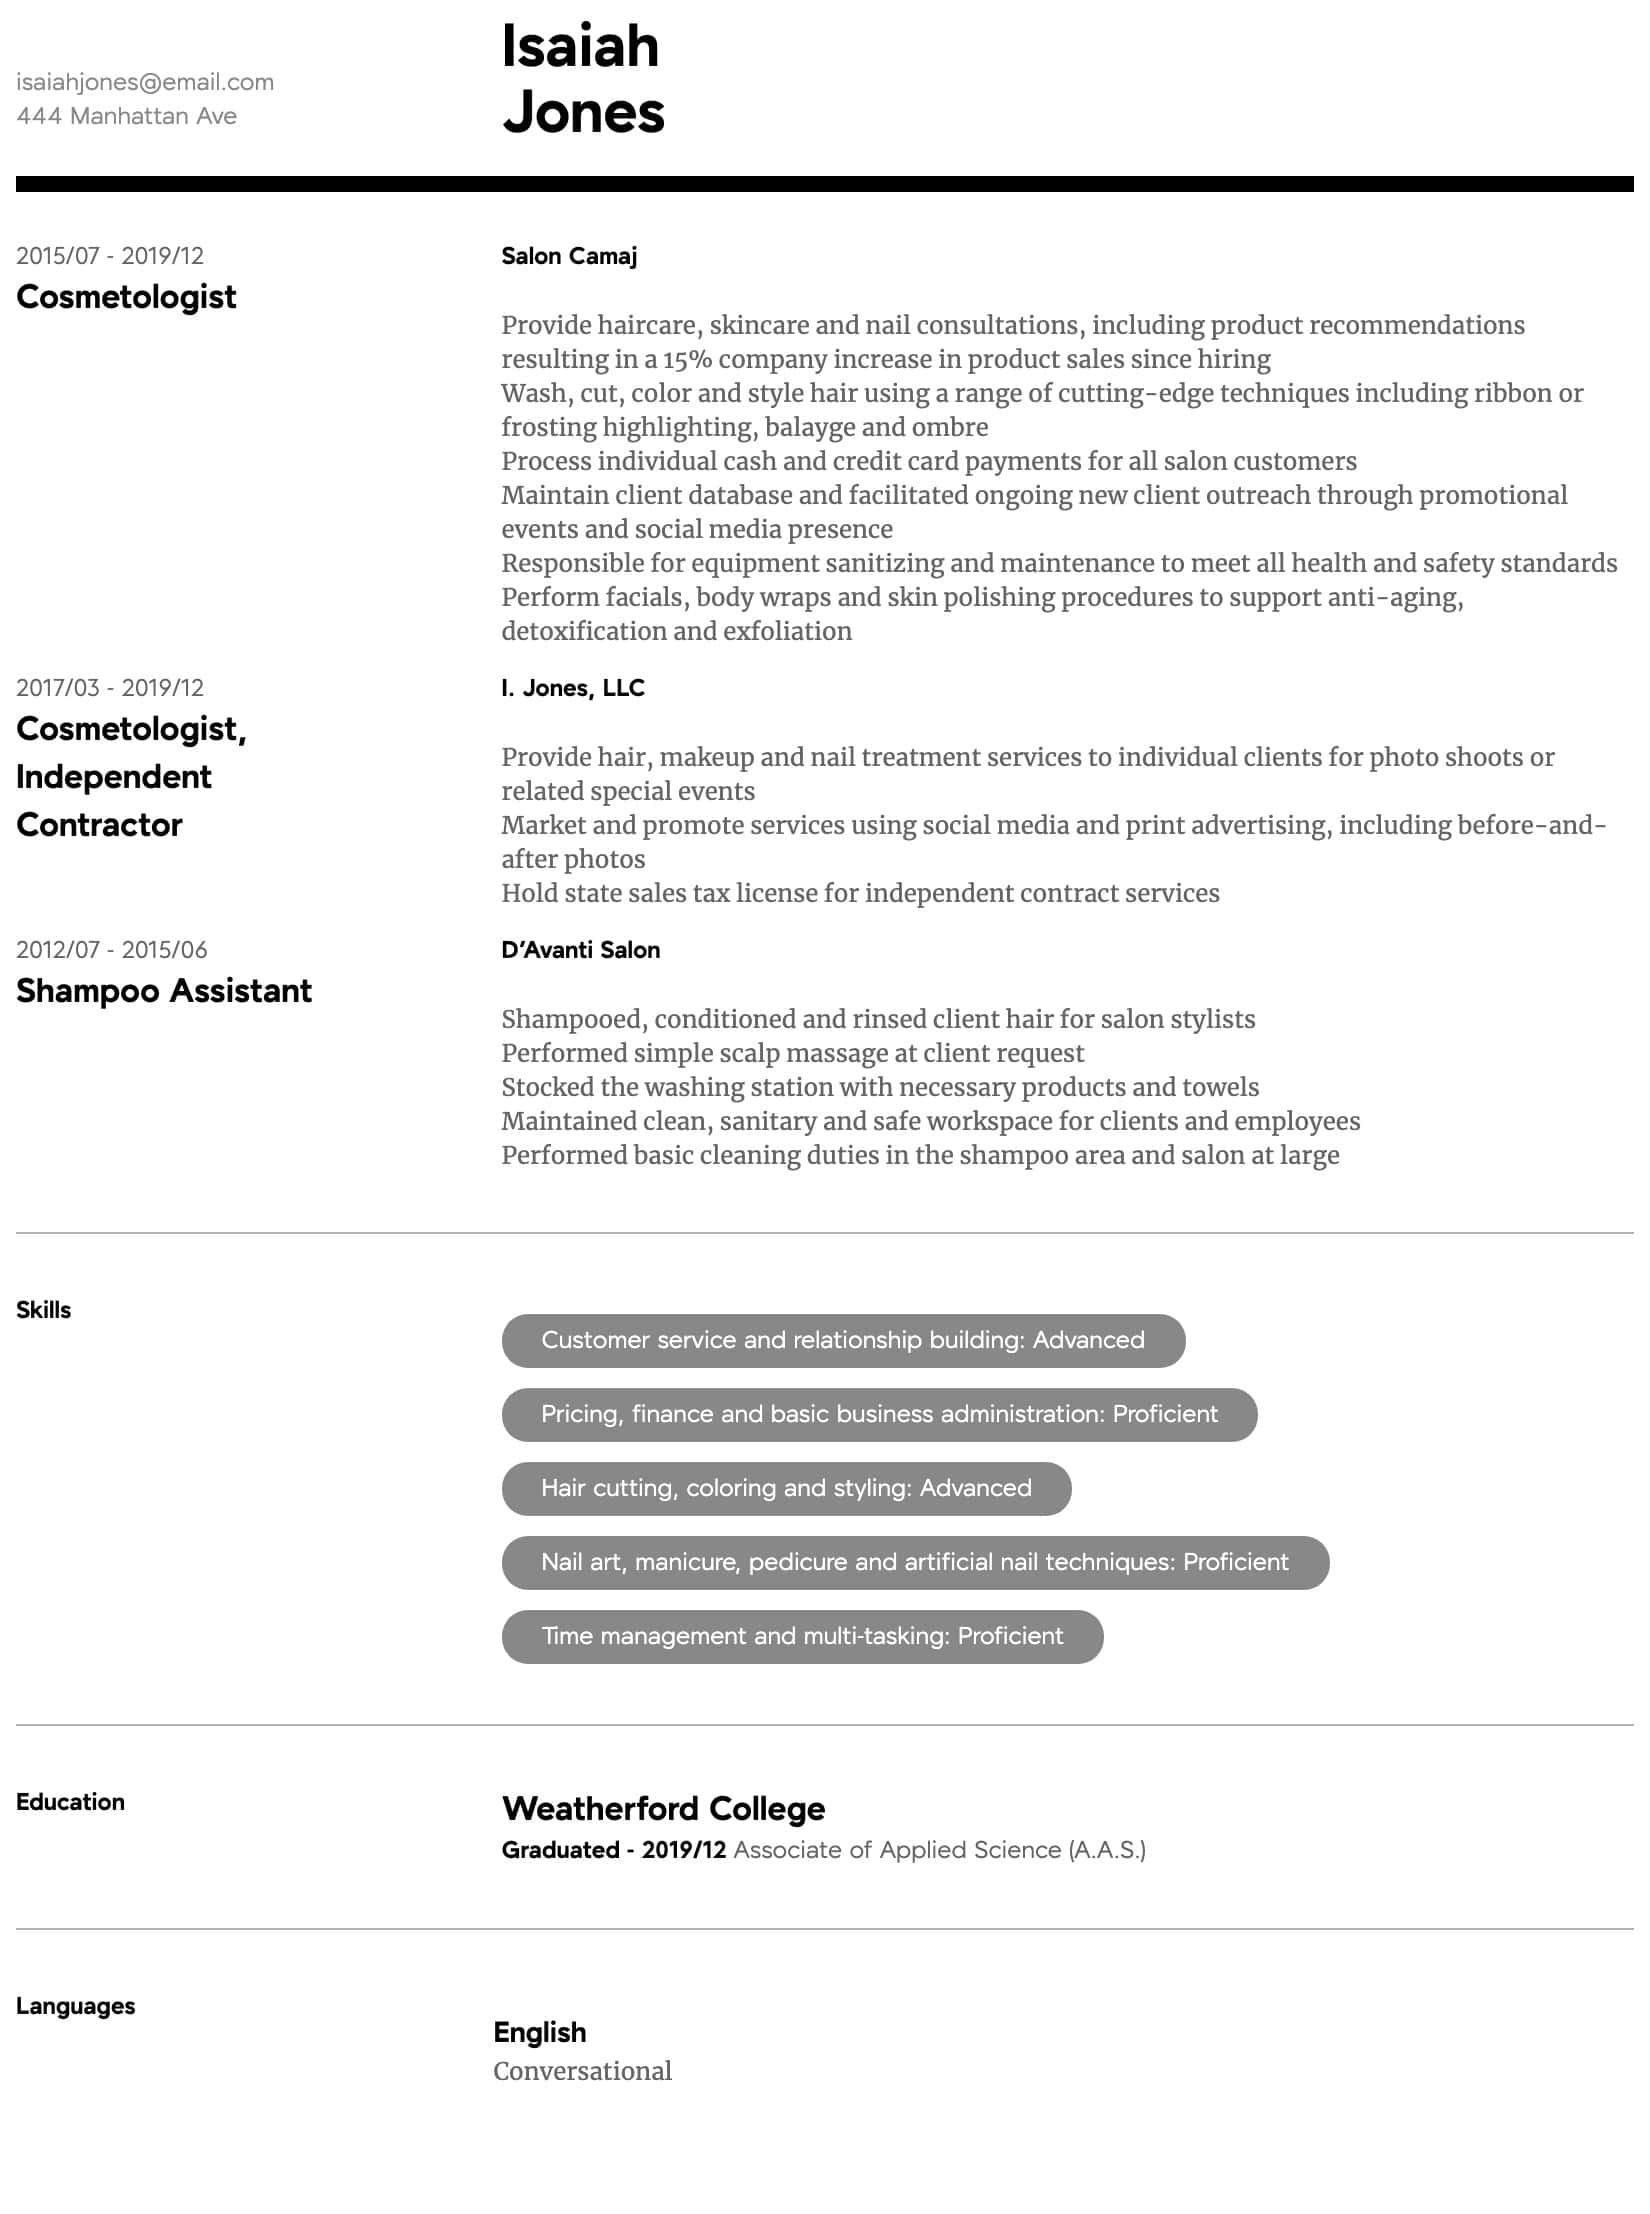 cosmetologist resume line 17qq cosmetology student examples hdfdobgfz front office Resume Cosmetology Student Resume Examples